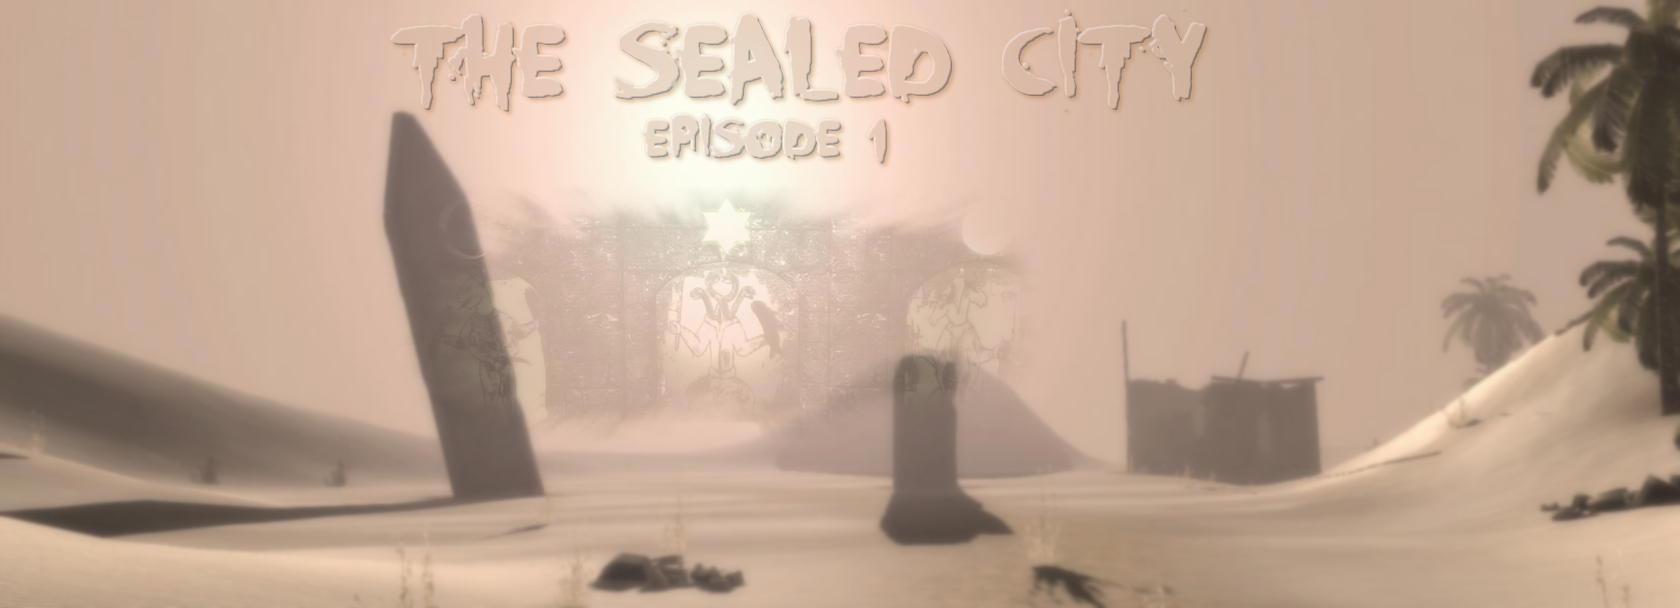 The Sealed City